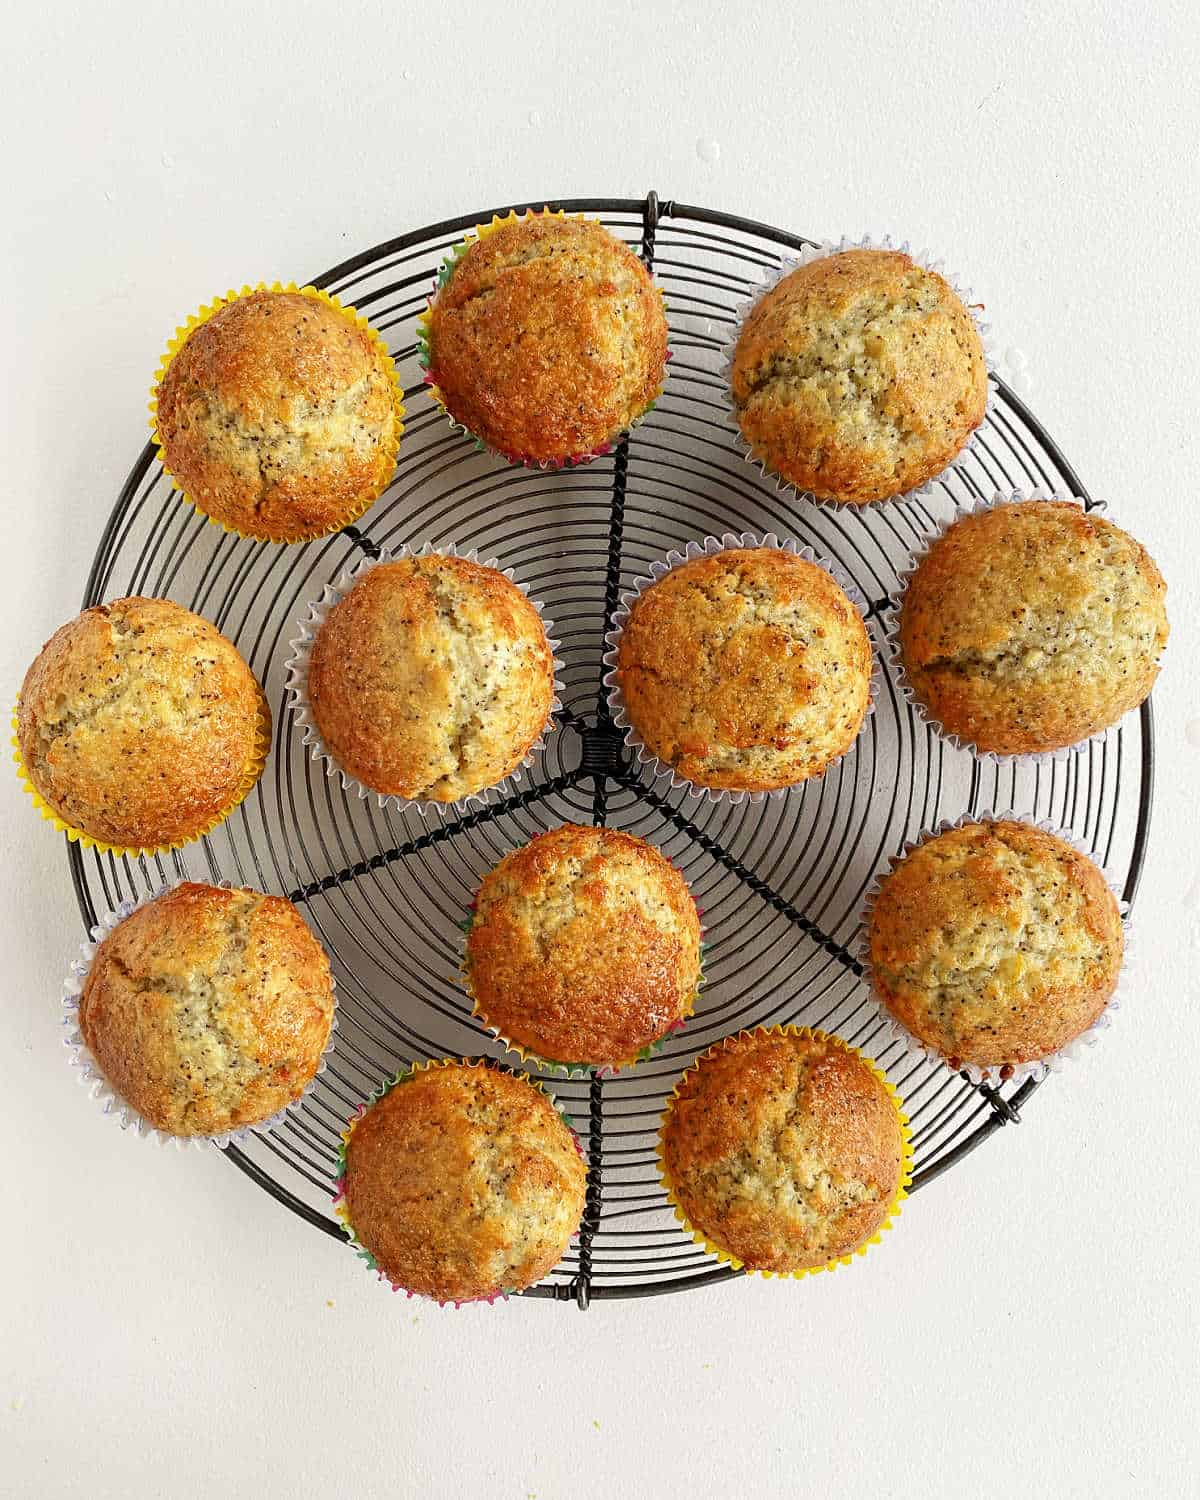 Top view of round wire rack with lemon muffins on white surface